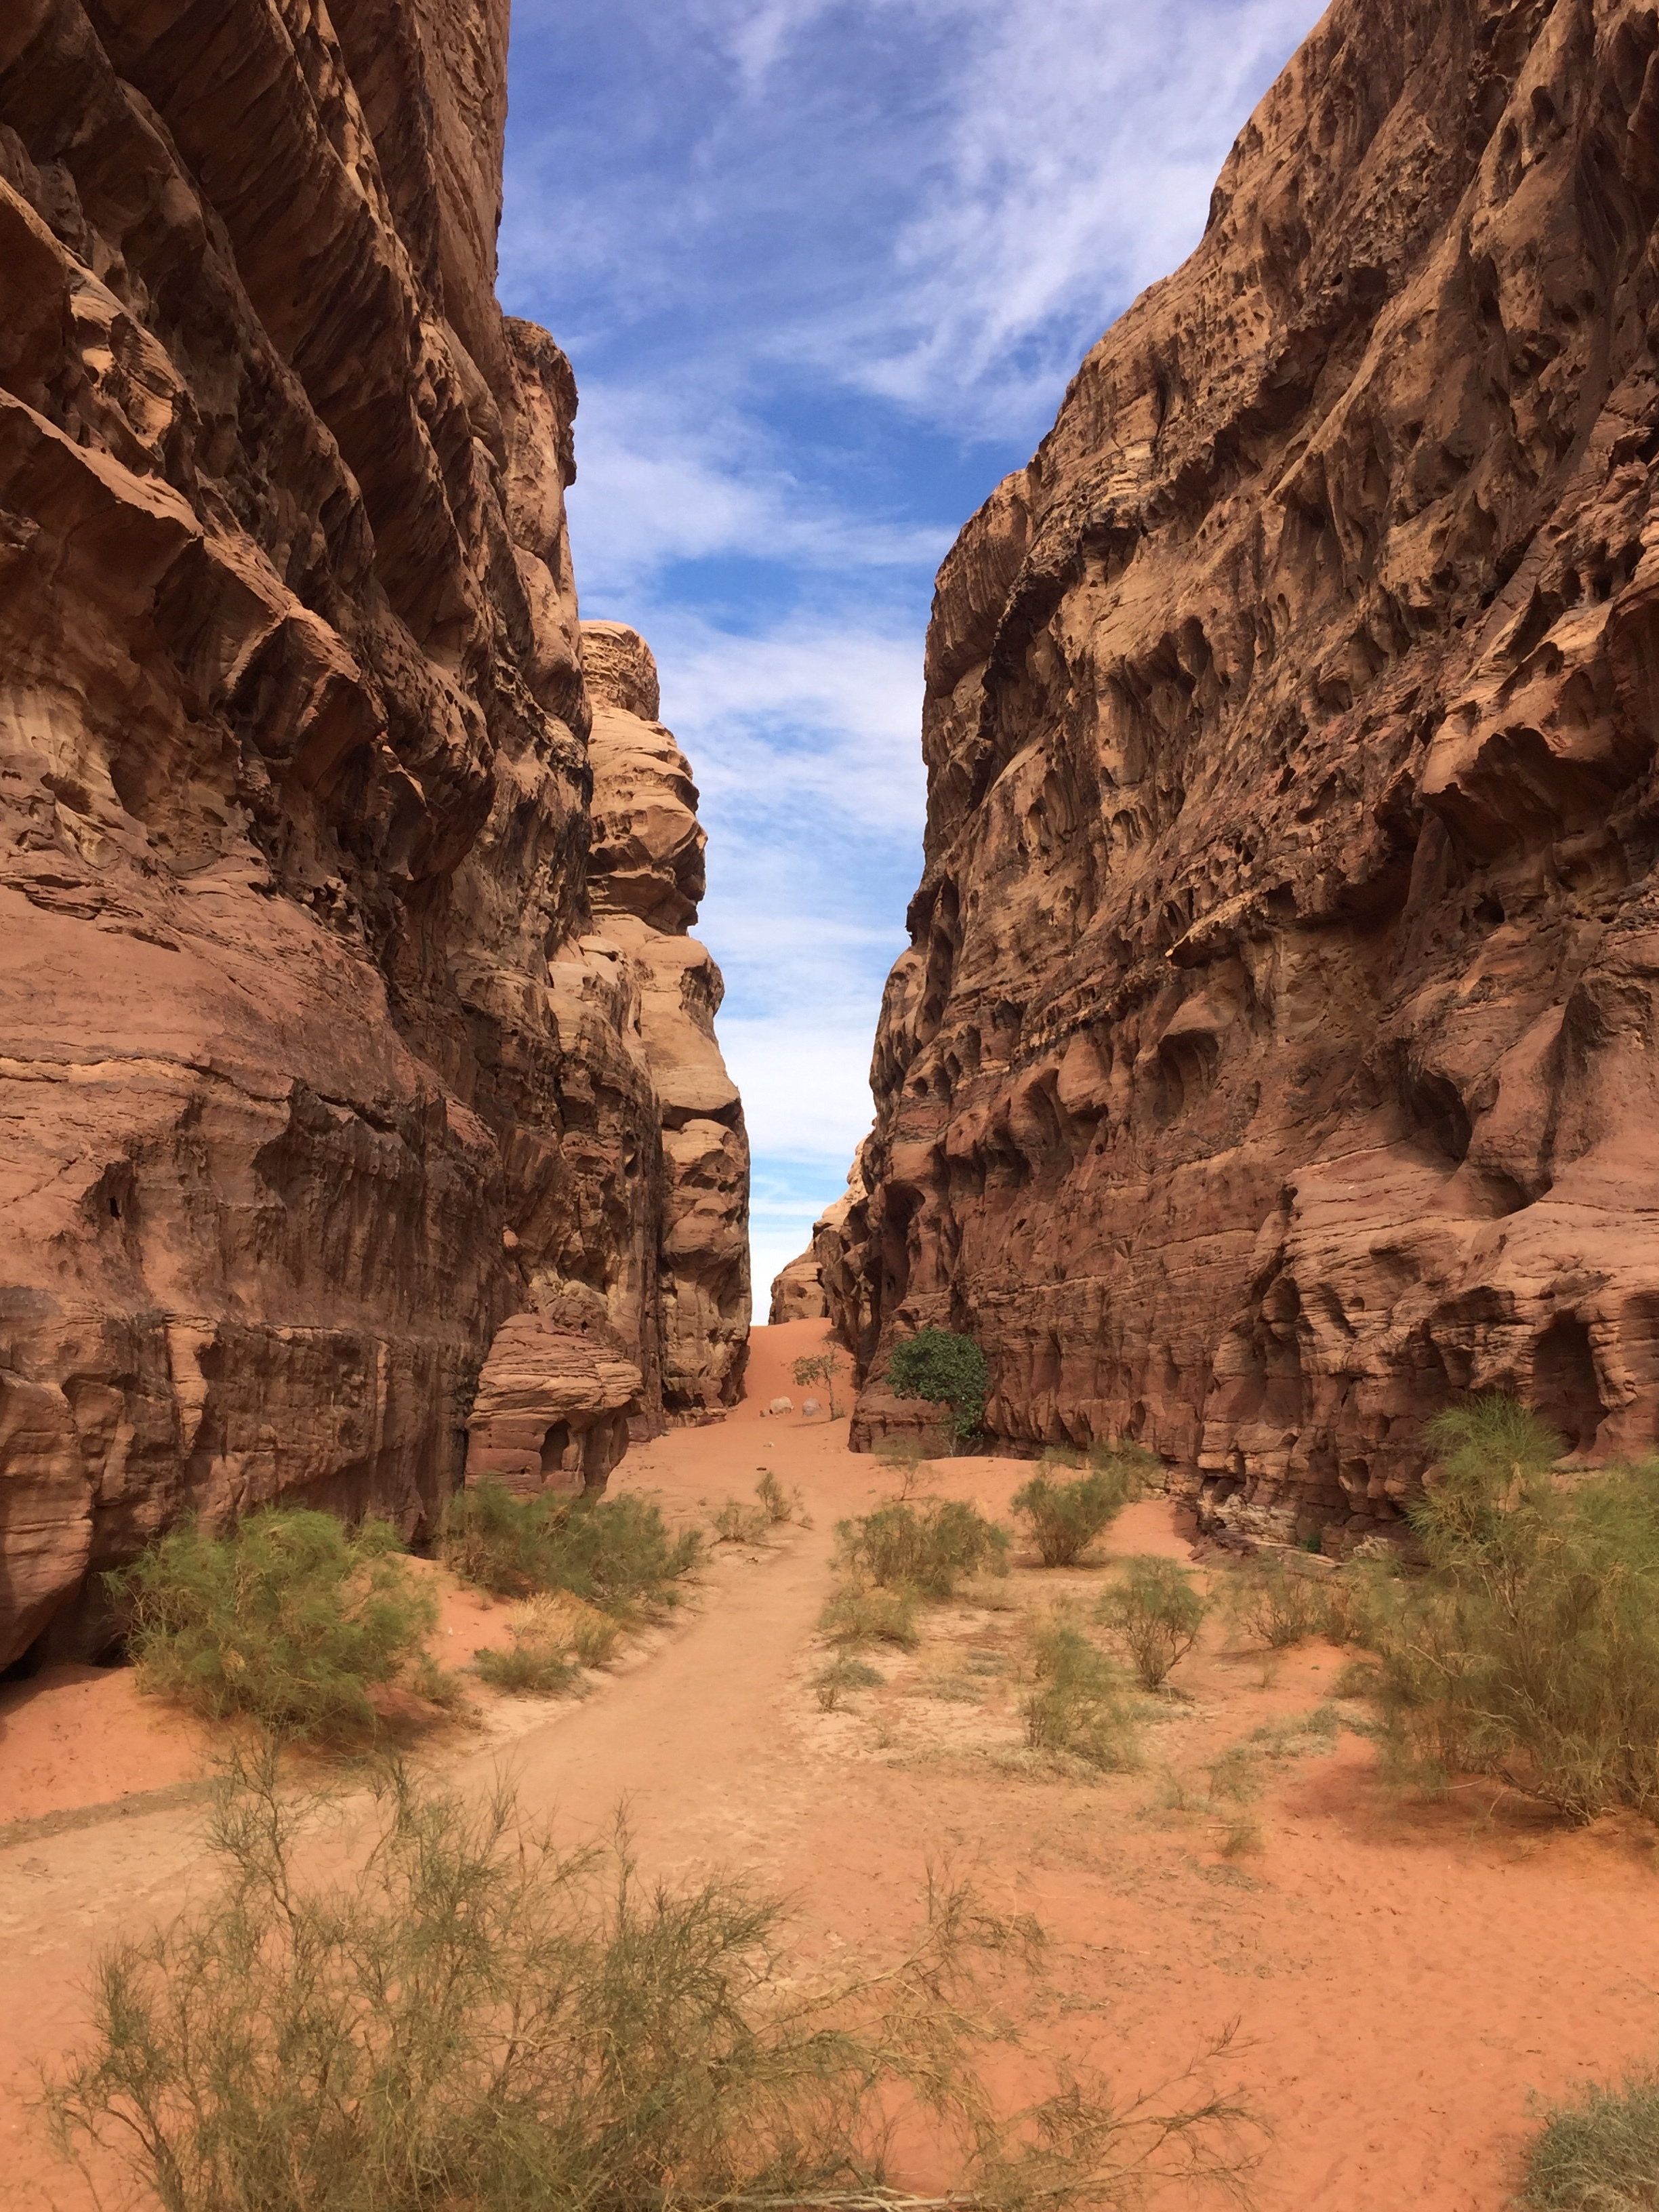 We were dropped off by the guide and told to walk through this canyon. It was one of the few times we were completely alone is the vast desert landscape.